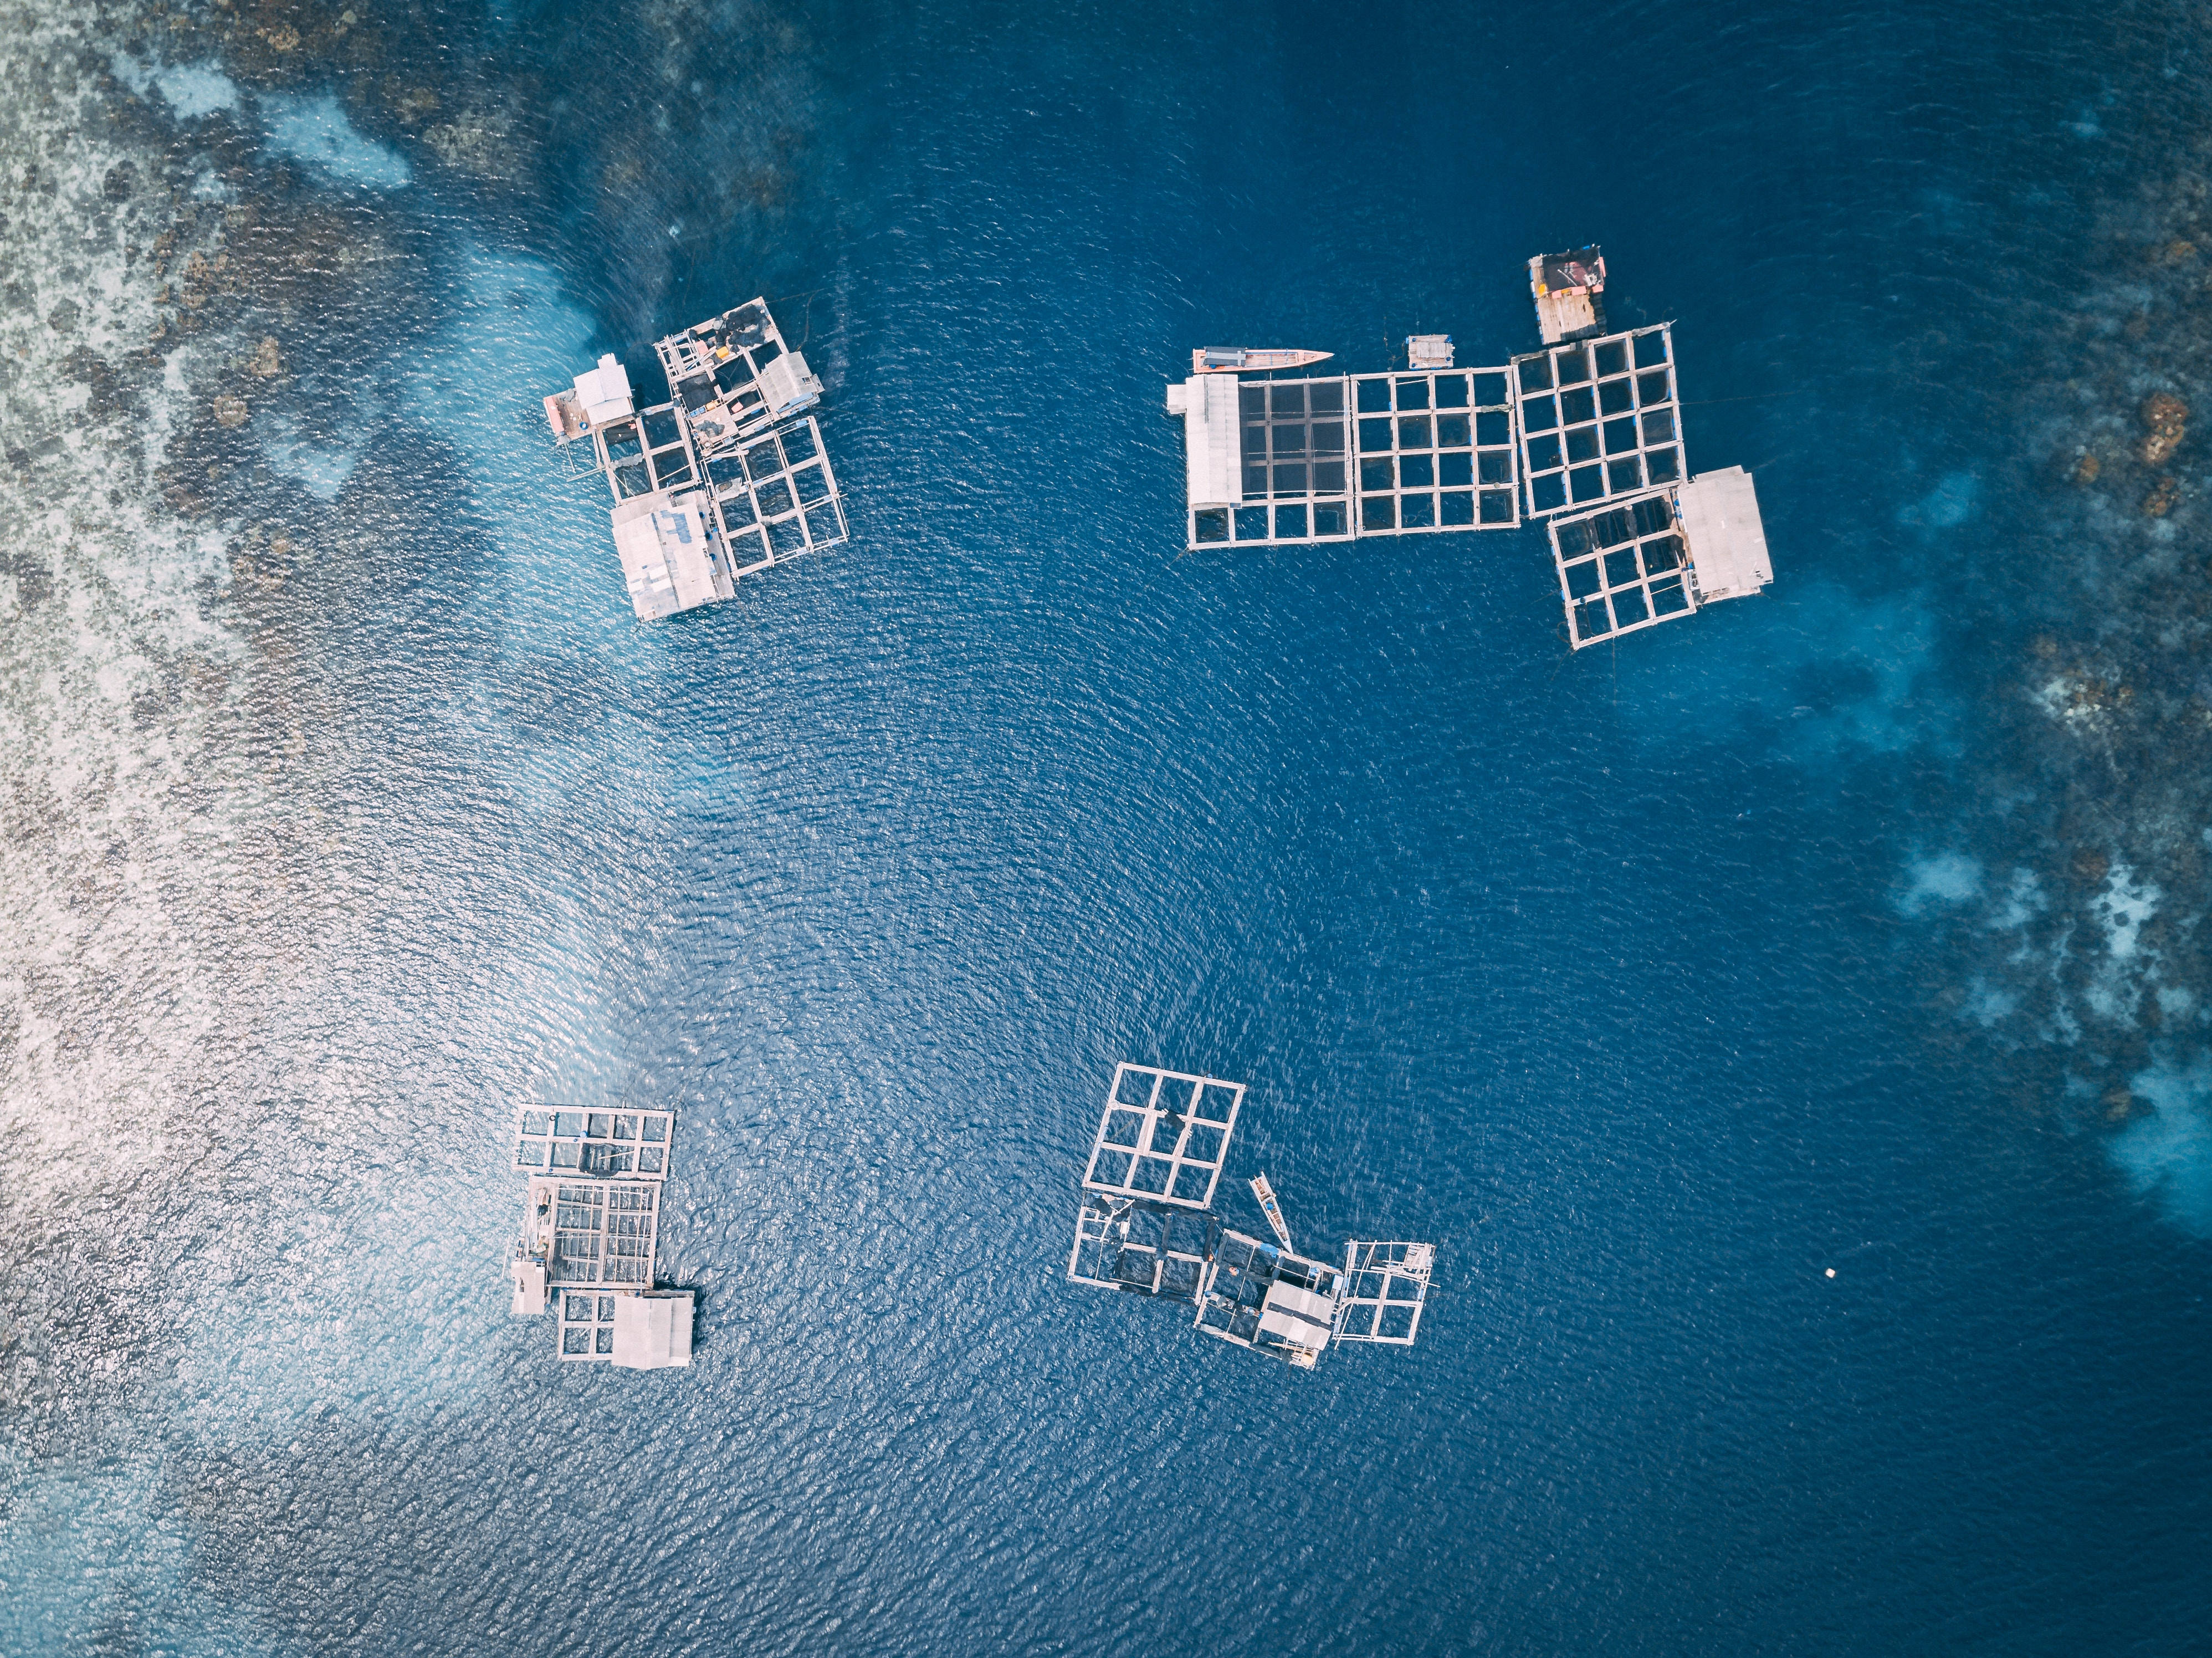 MIDSA - MIcroencapsulated Diets for Sustainable Aquaculture